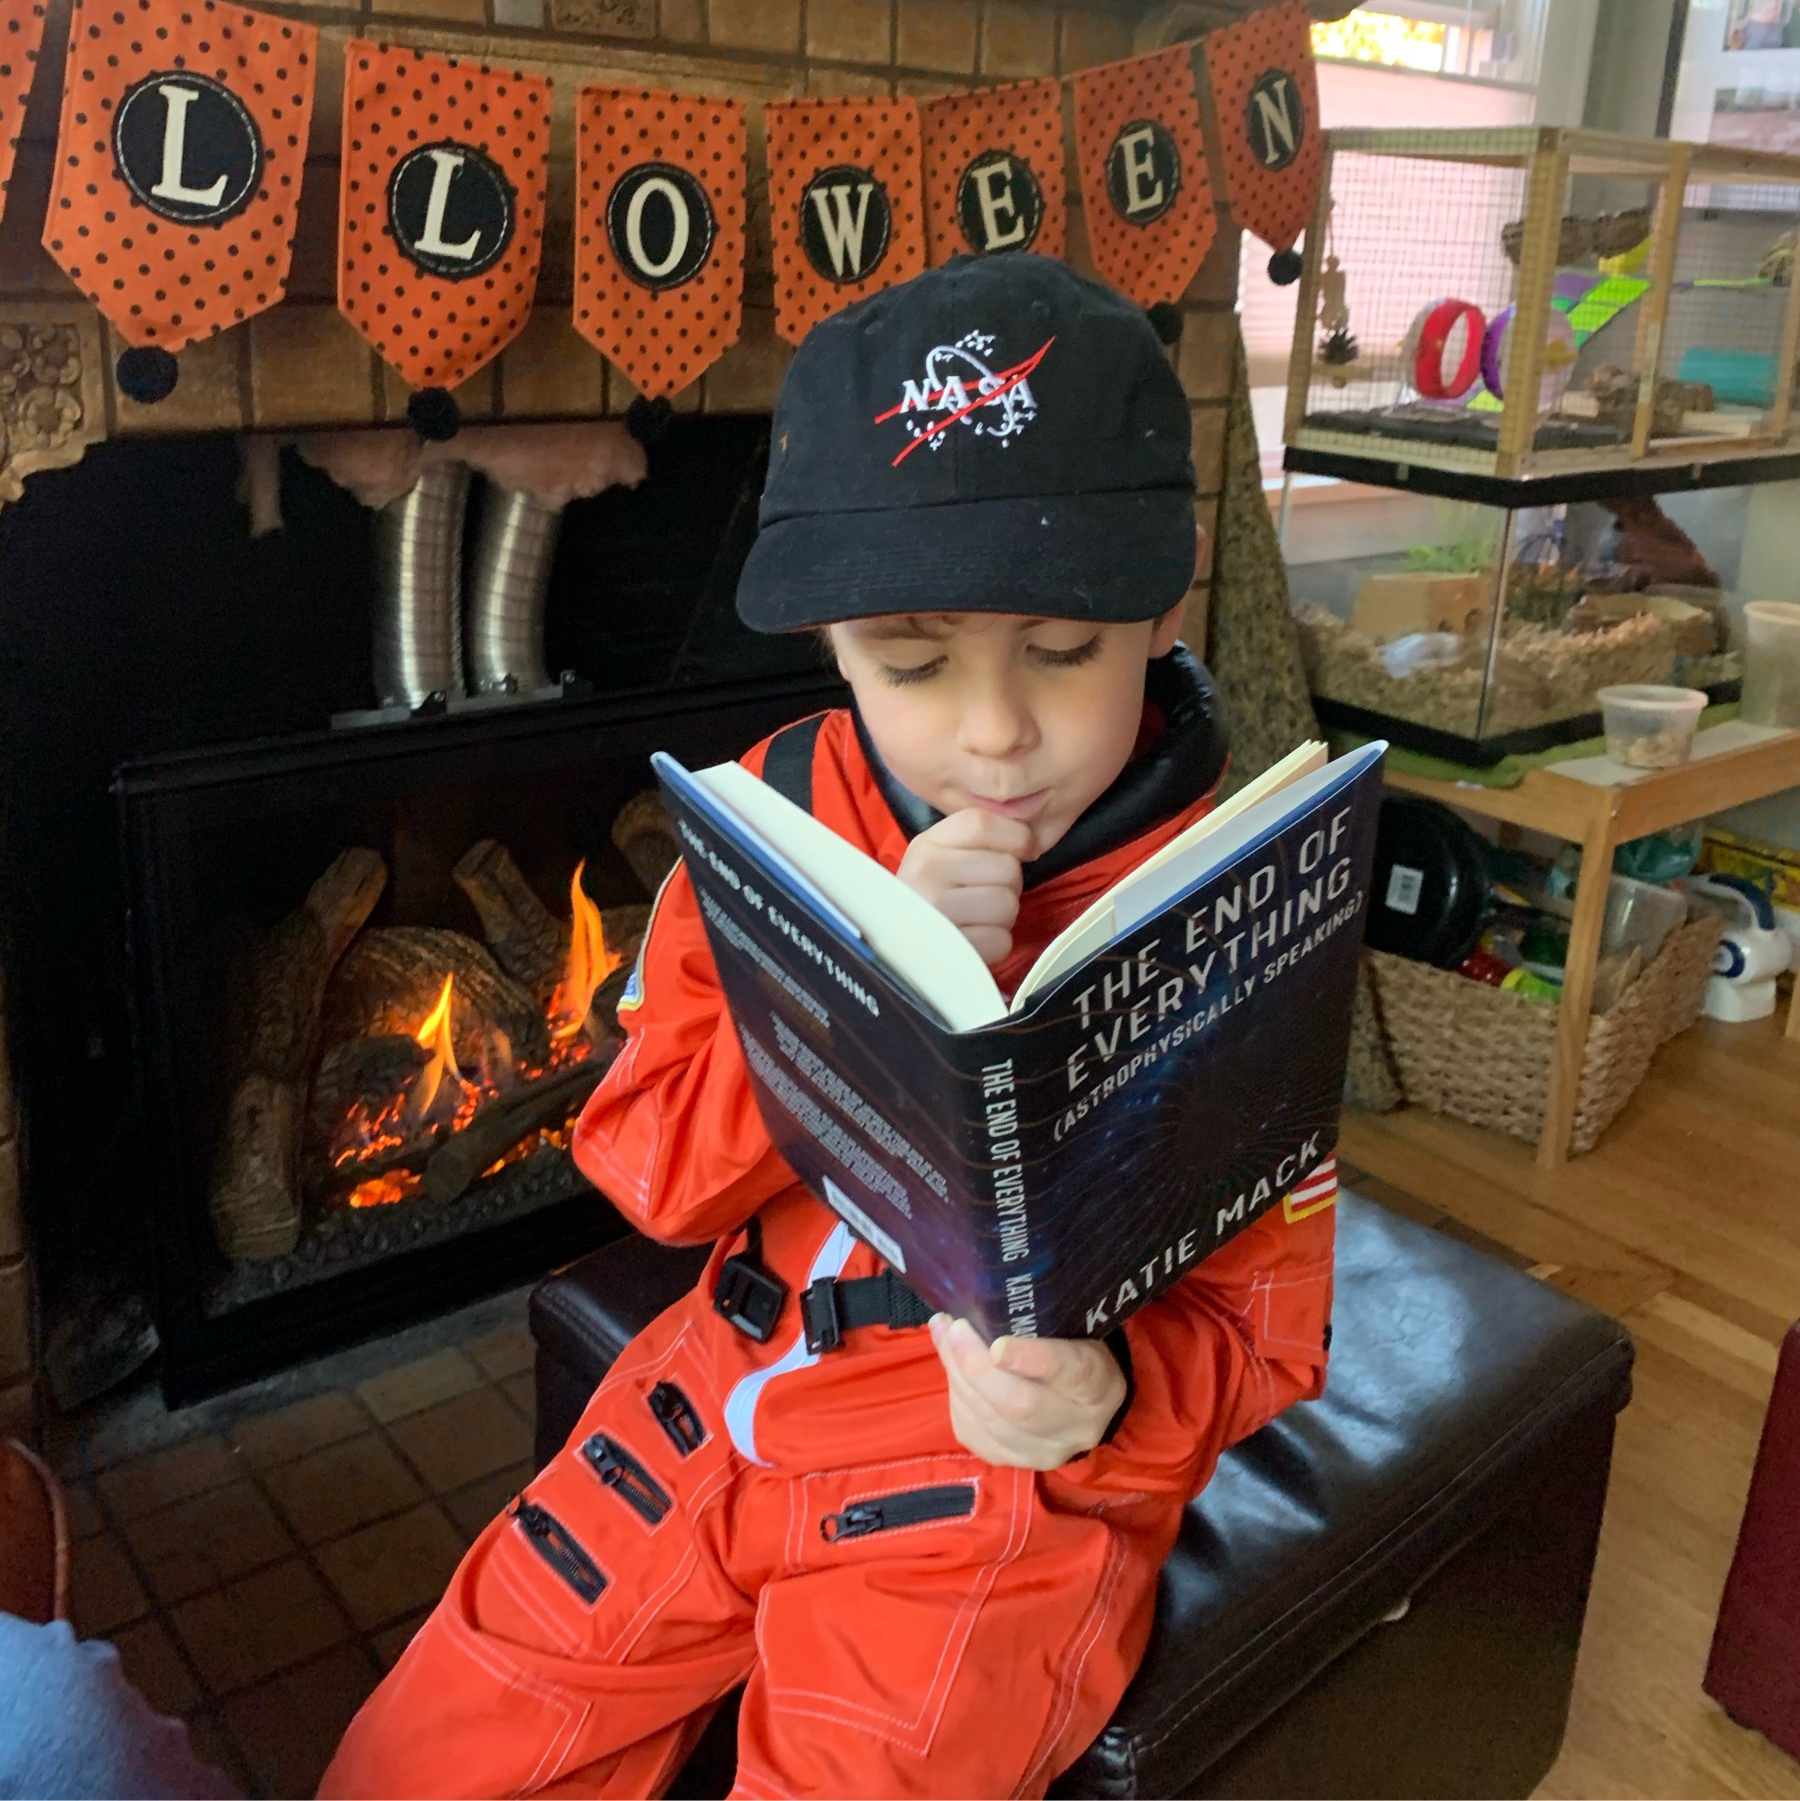 7-year-old in a NASA costume reading astrophysicist Katie Mack's book.